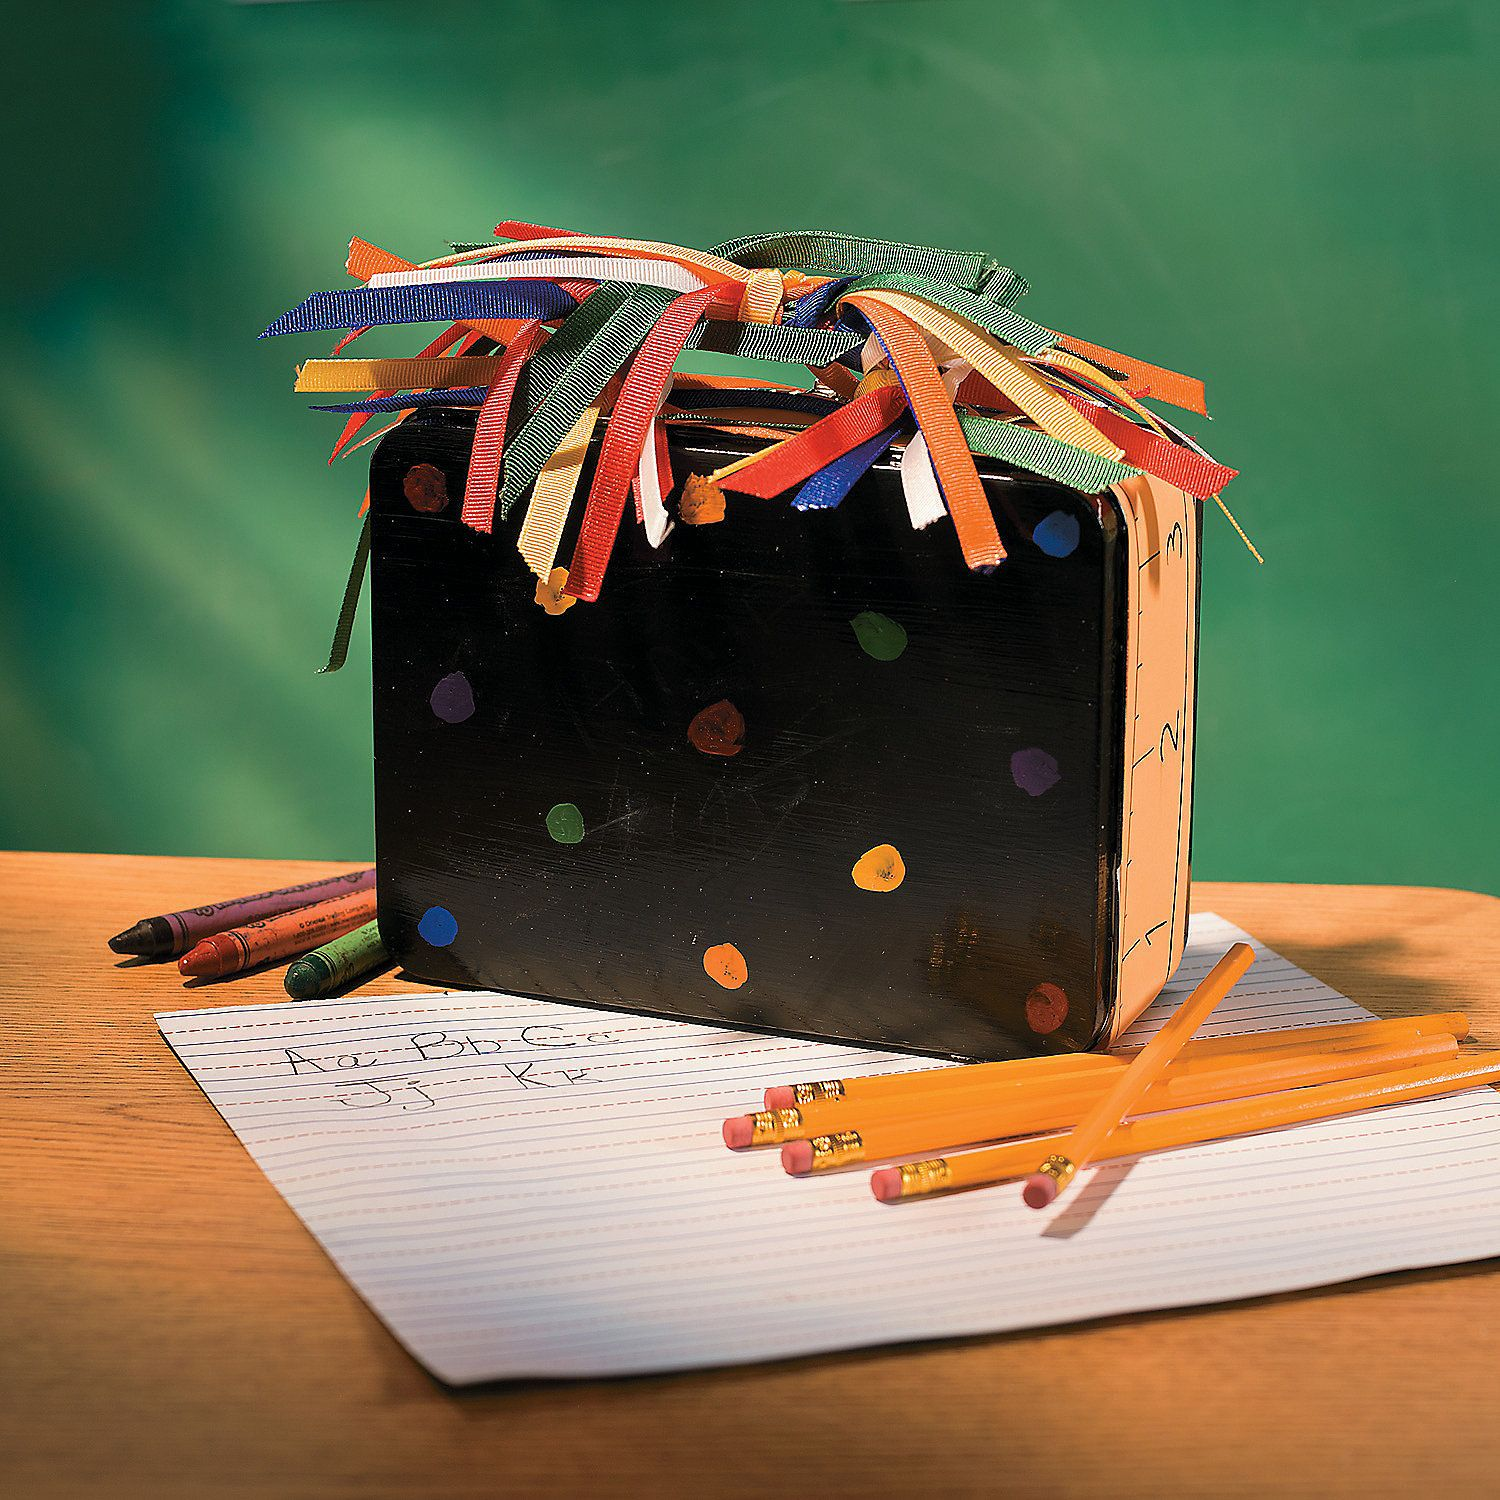 Chalkboard Lunchbox Project Idea Paper craft projects